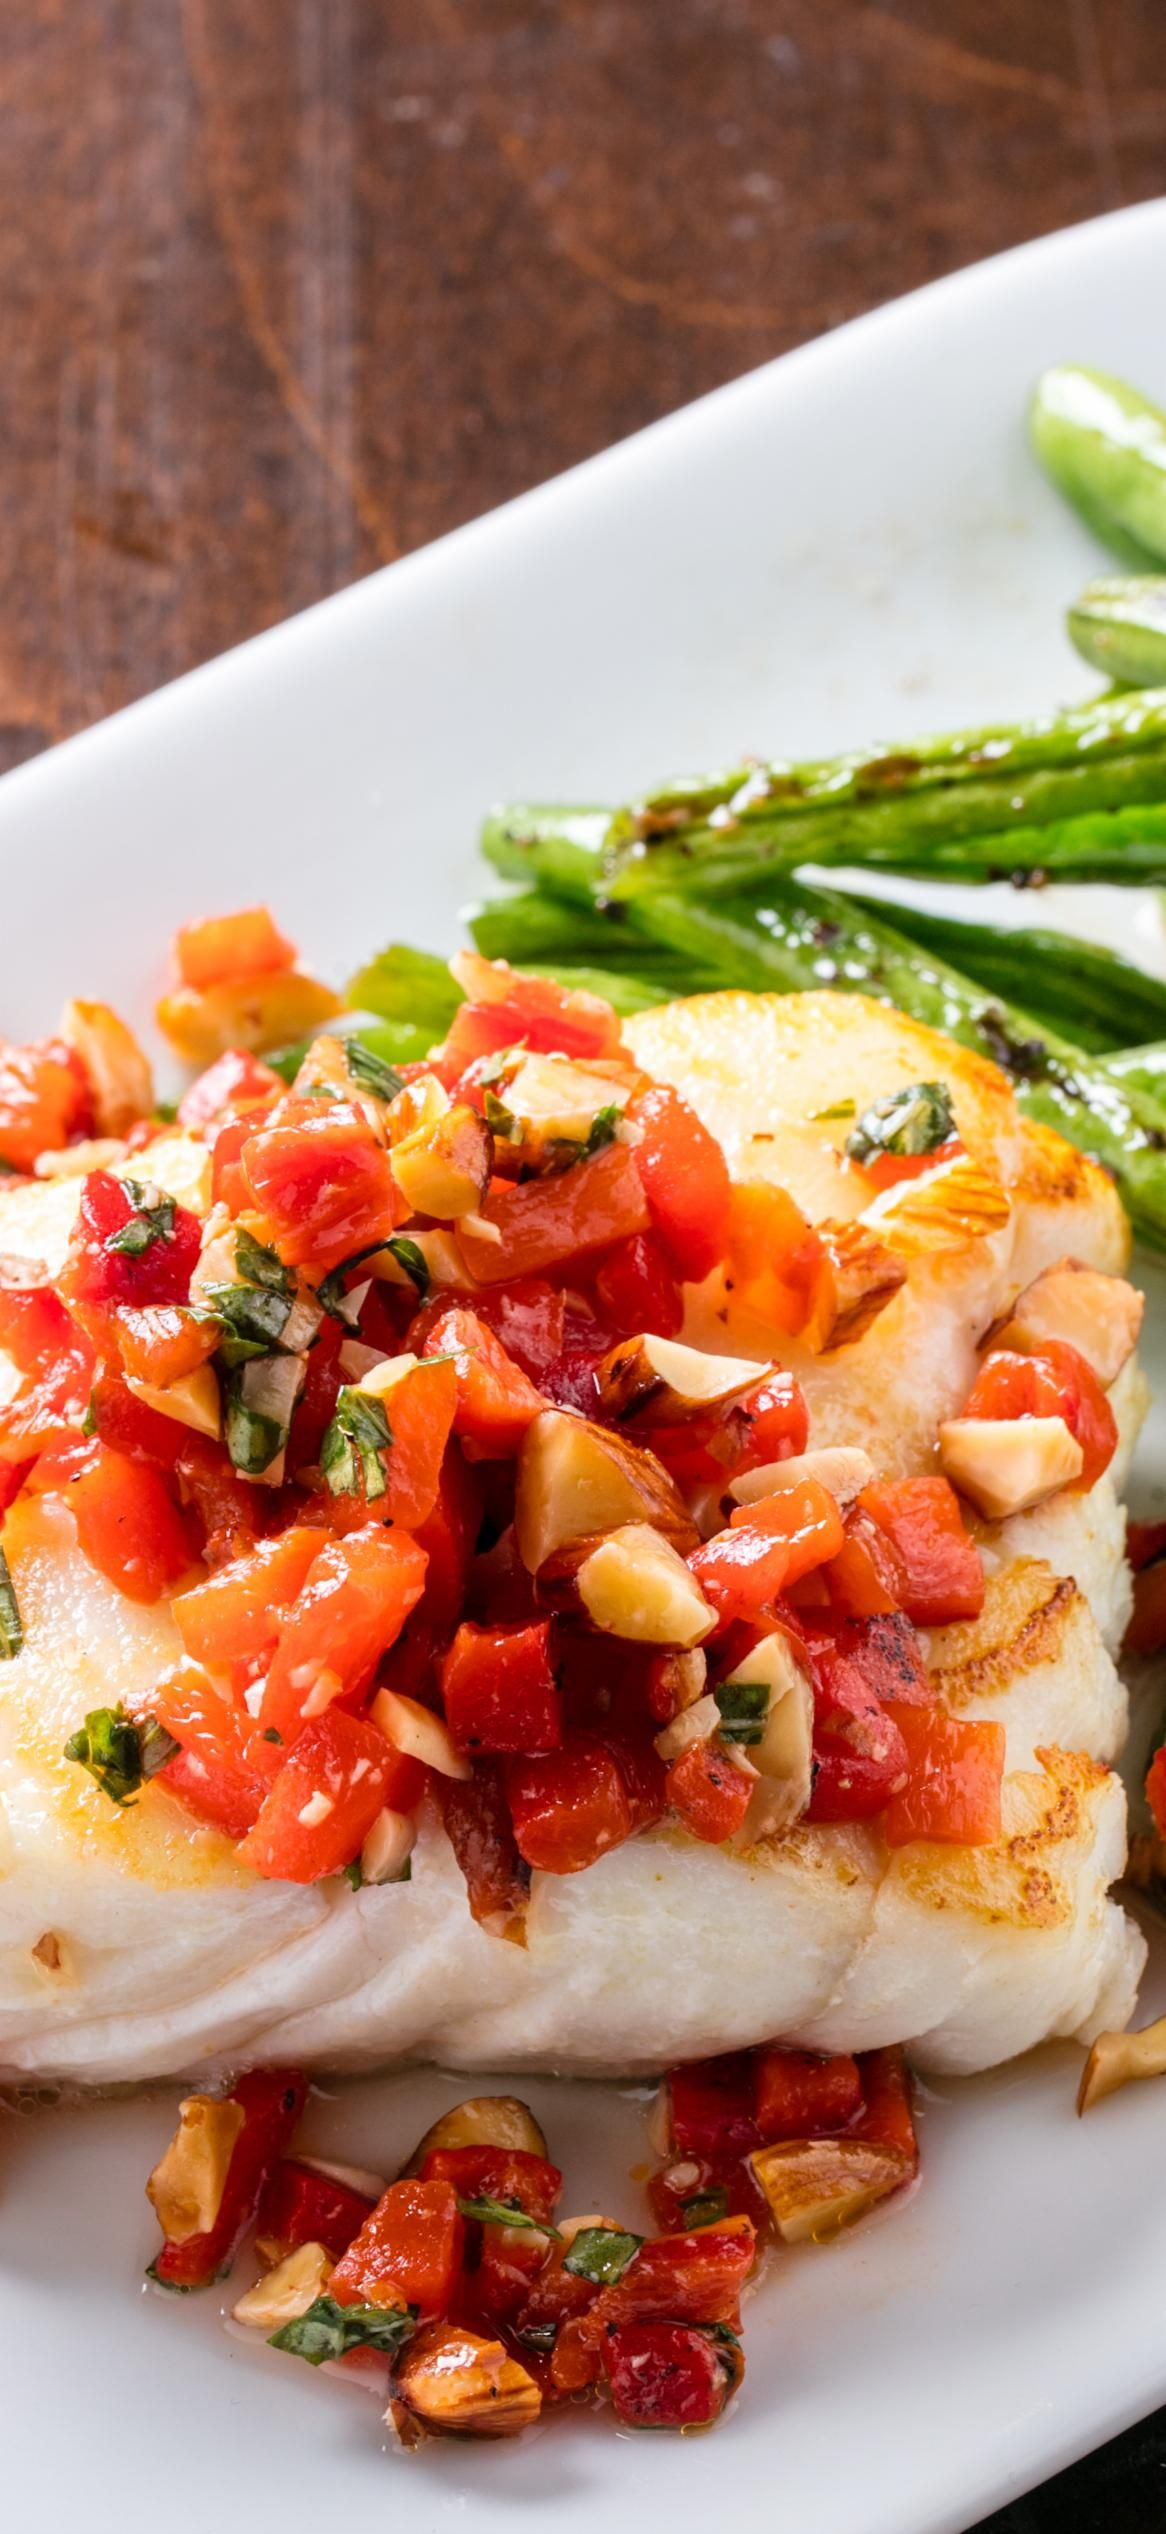 Pan Seared Cod With Blistered Green Beans And Red Pepper Relish We Ll Show You How To Cook Fish For A Quic Seafood Dinner Best Seafood Recipes Stuffed Peppers